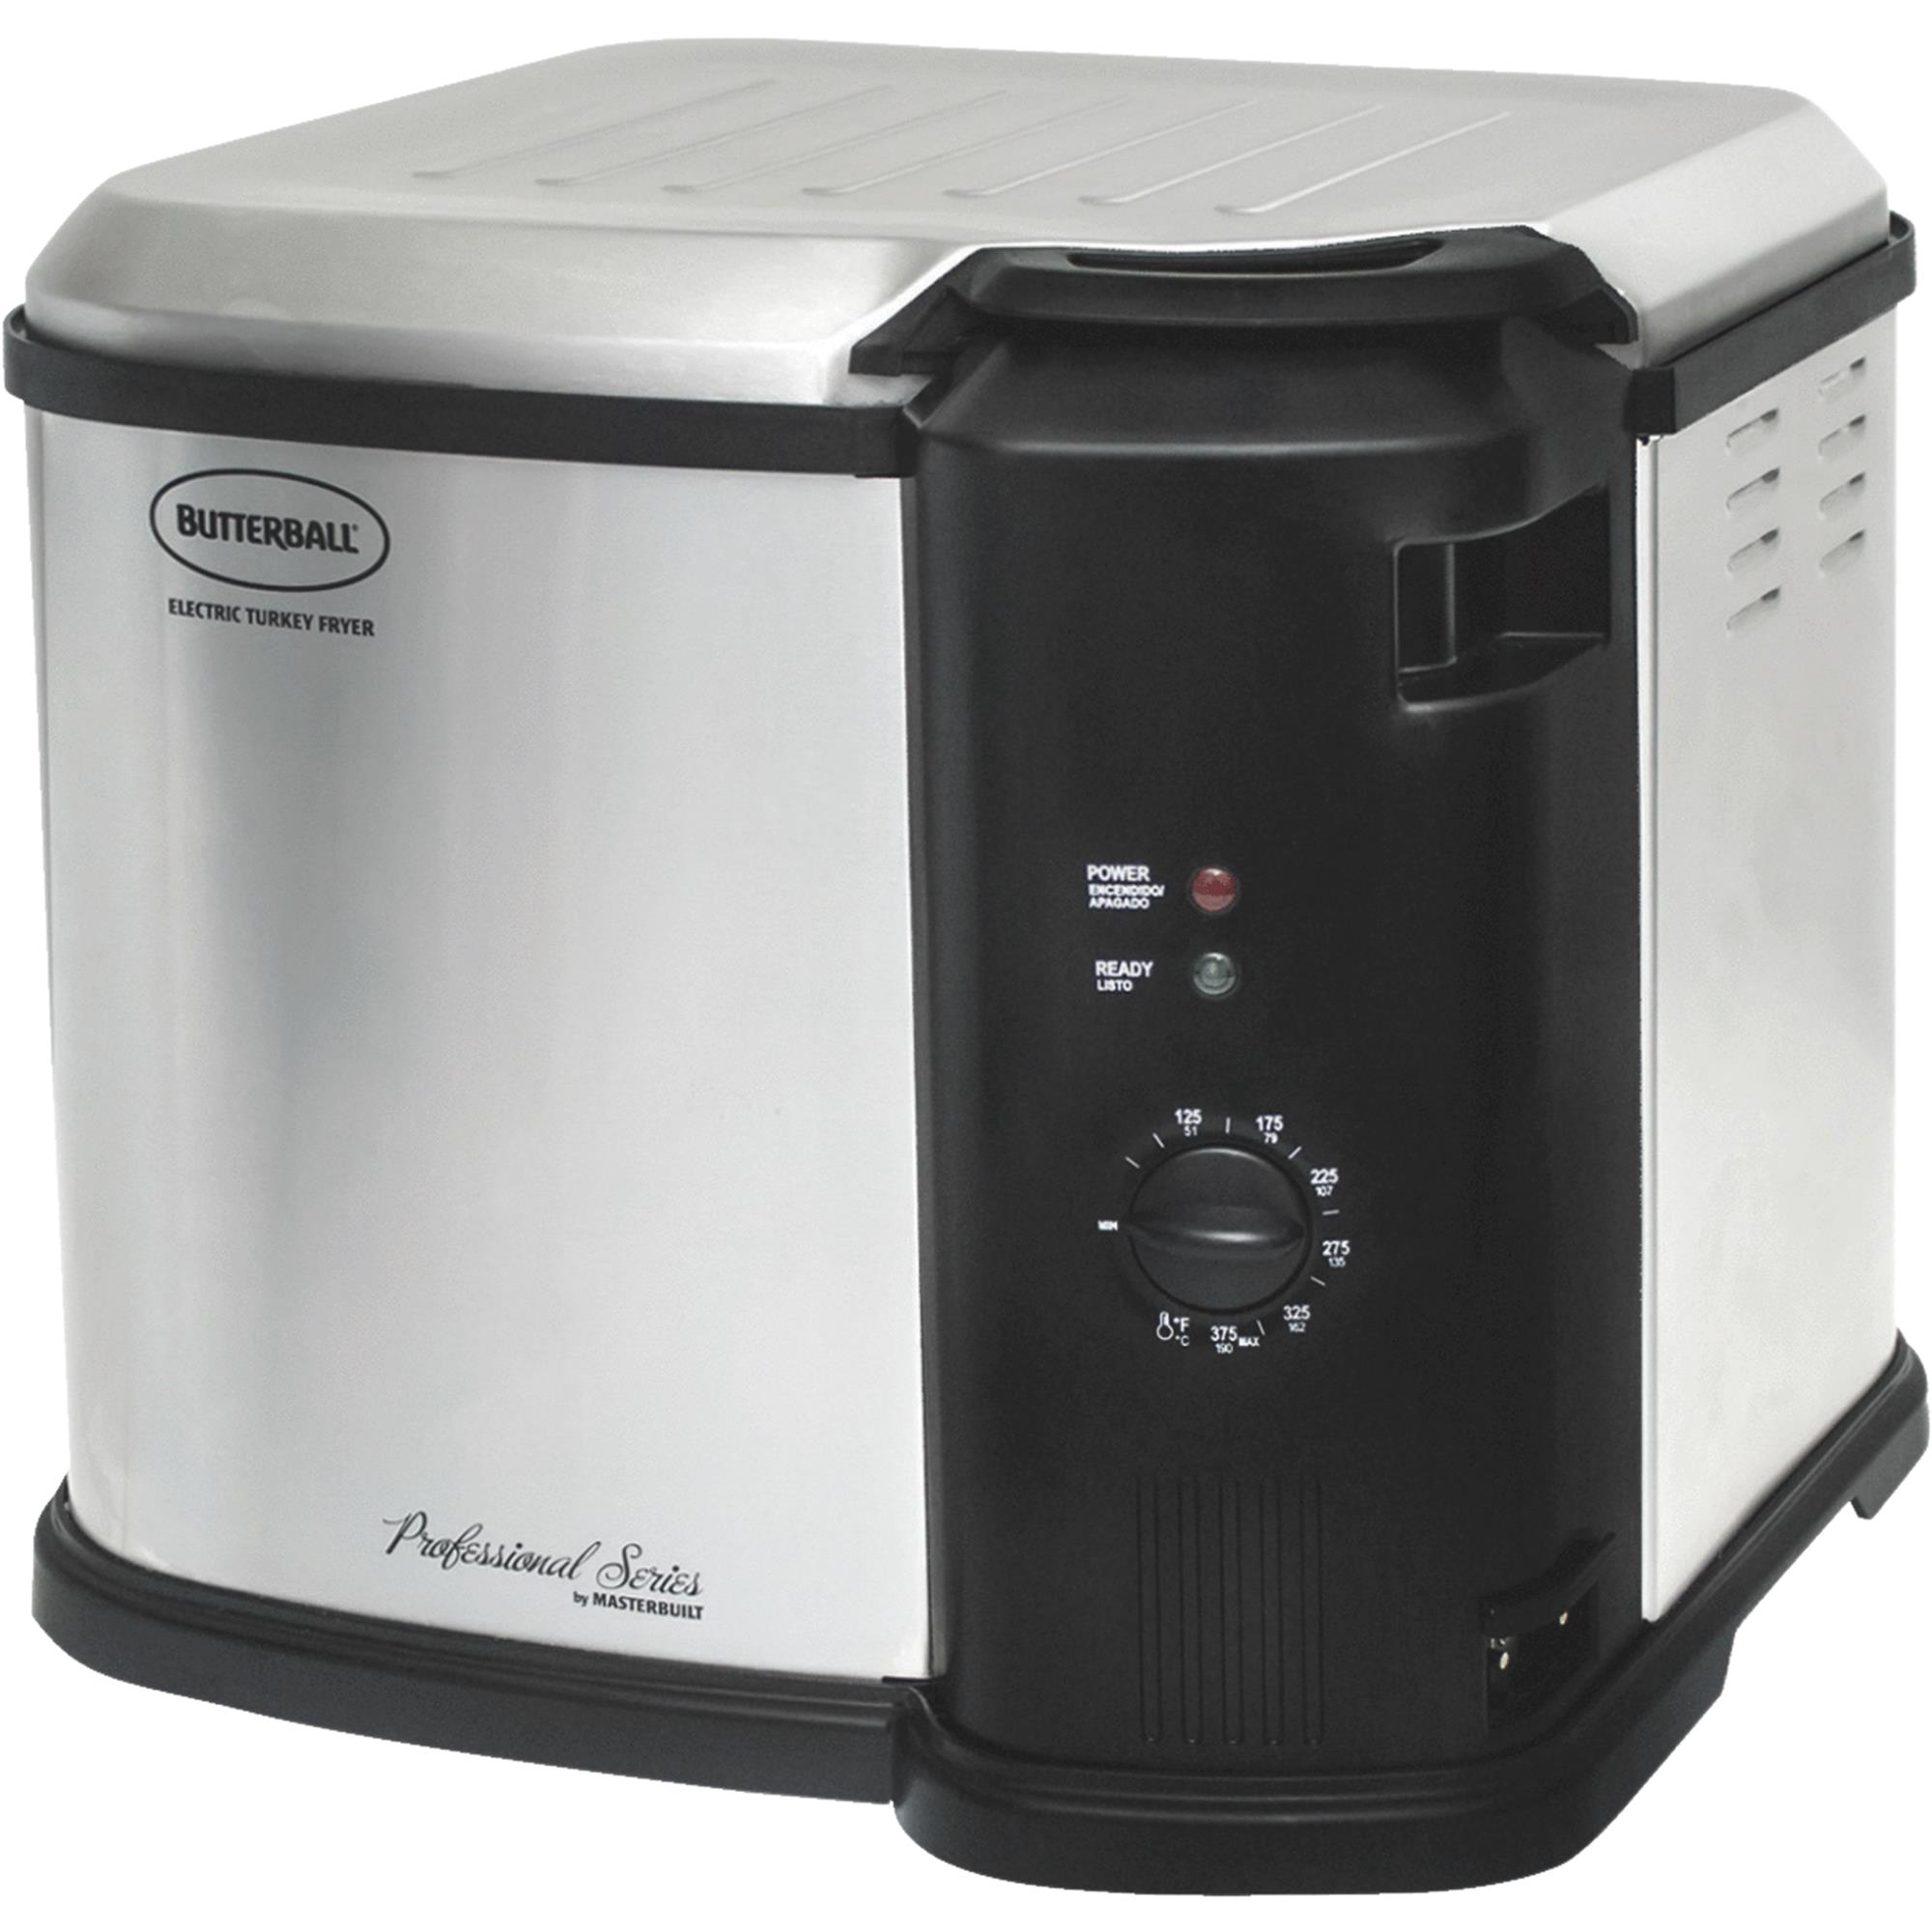 Butterball Electric Fryer, 14 lb. Capacity